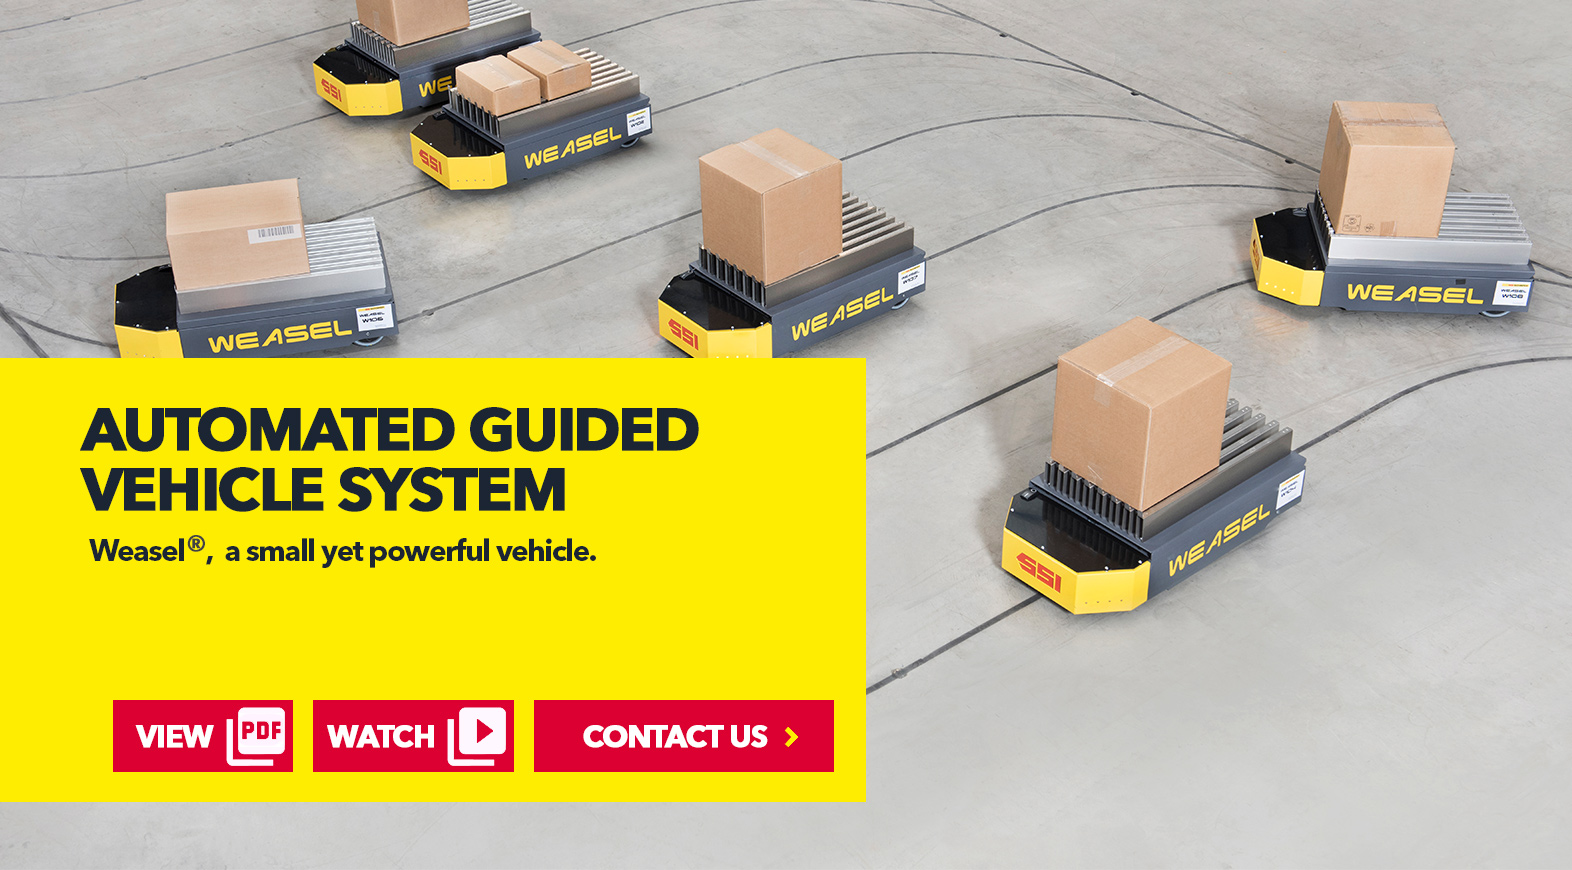 WEASEL® Automated Guided Vehicle by SSI Schaefer USA Download Guide, Watch Video, Contact Us. www.chaefershelving.com